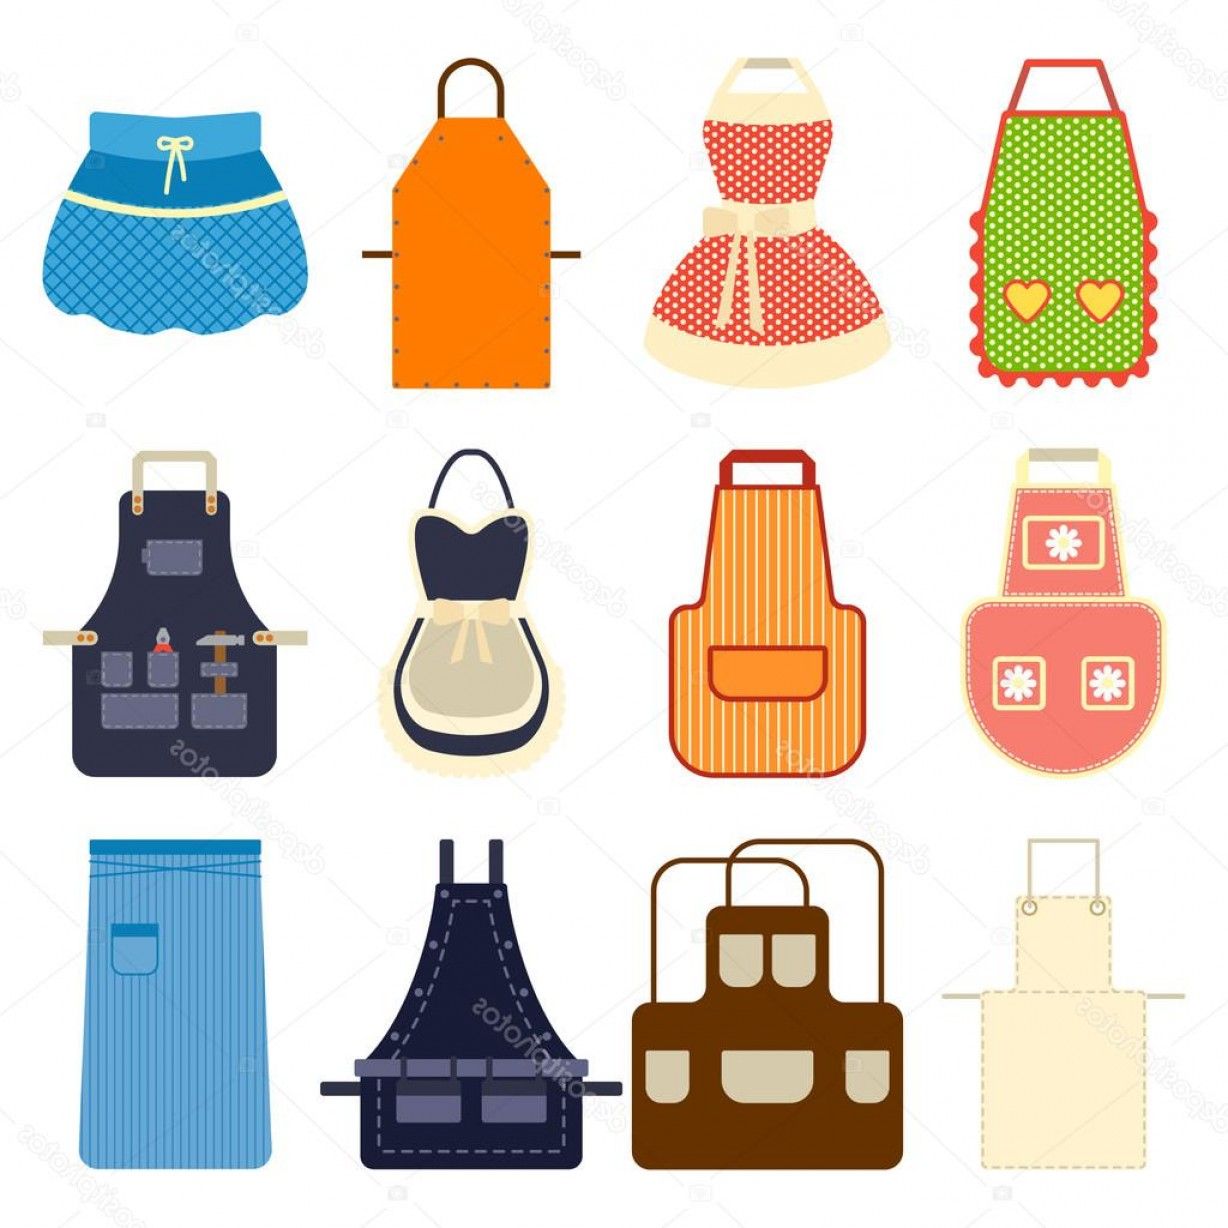 Apron Vector: Stock Illustration Kitchen Apron Set Vector Illustration